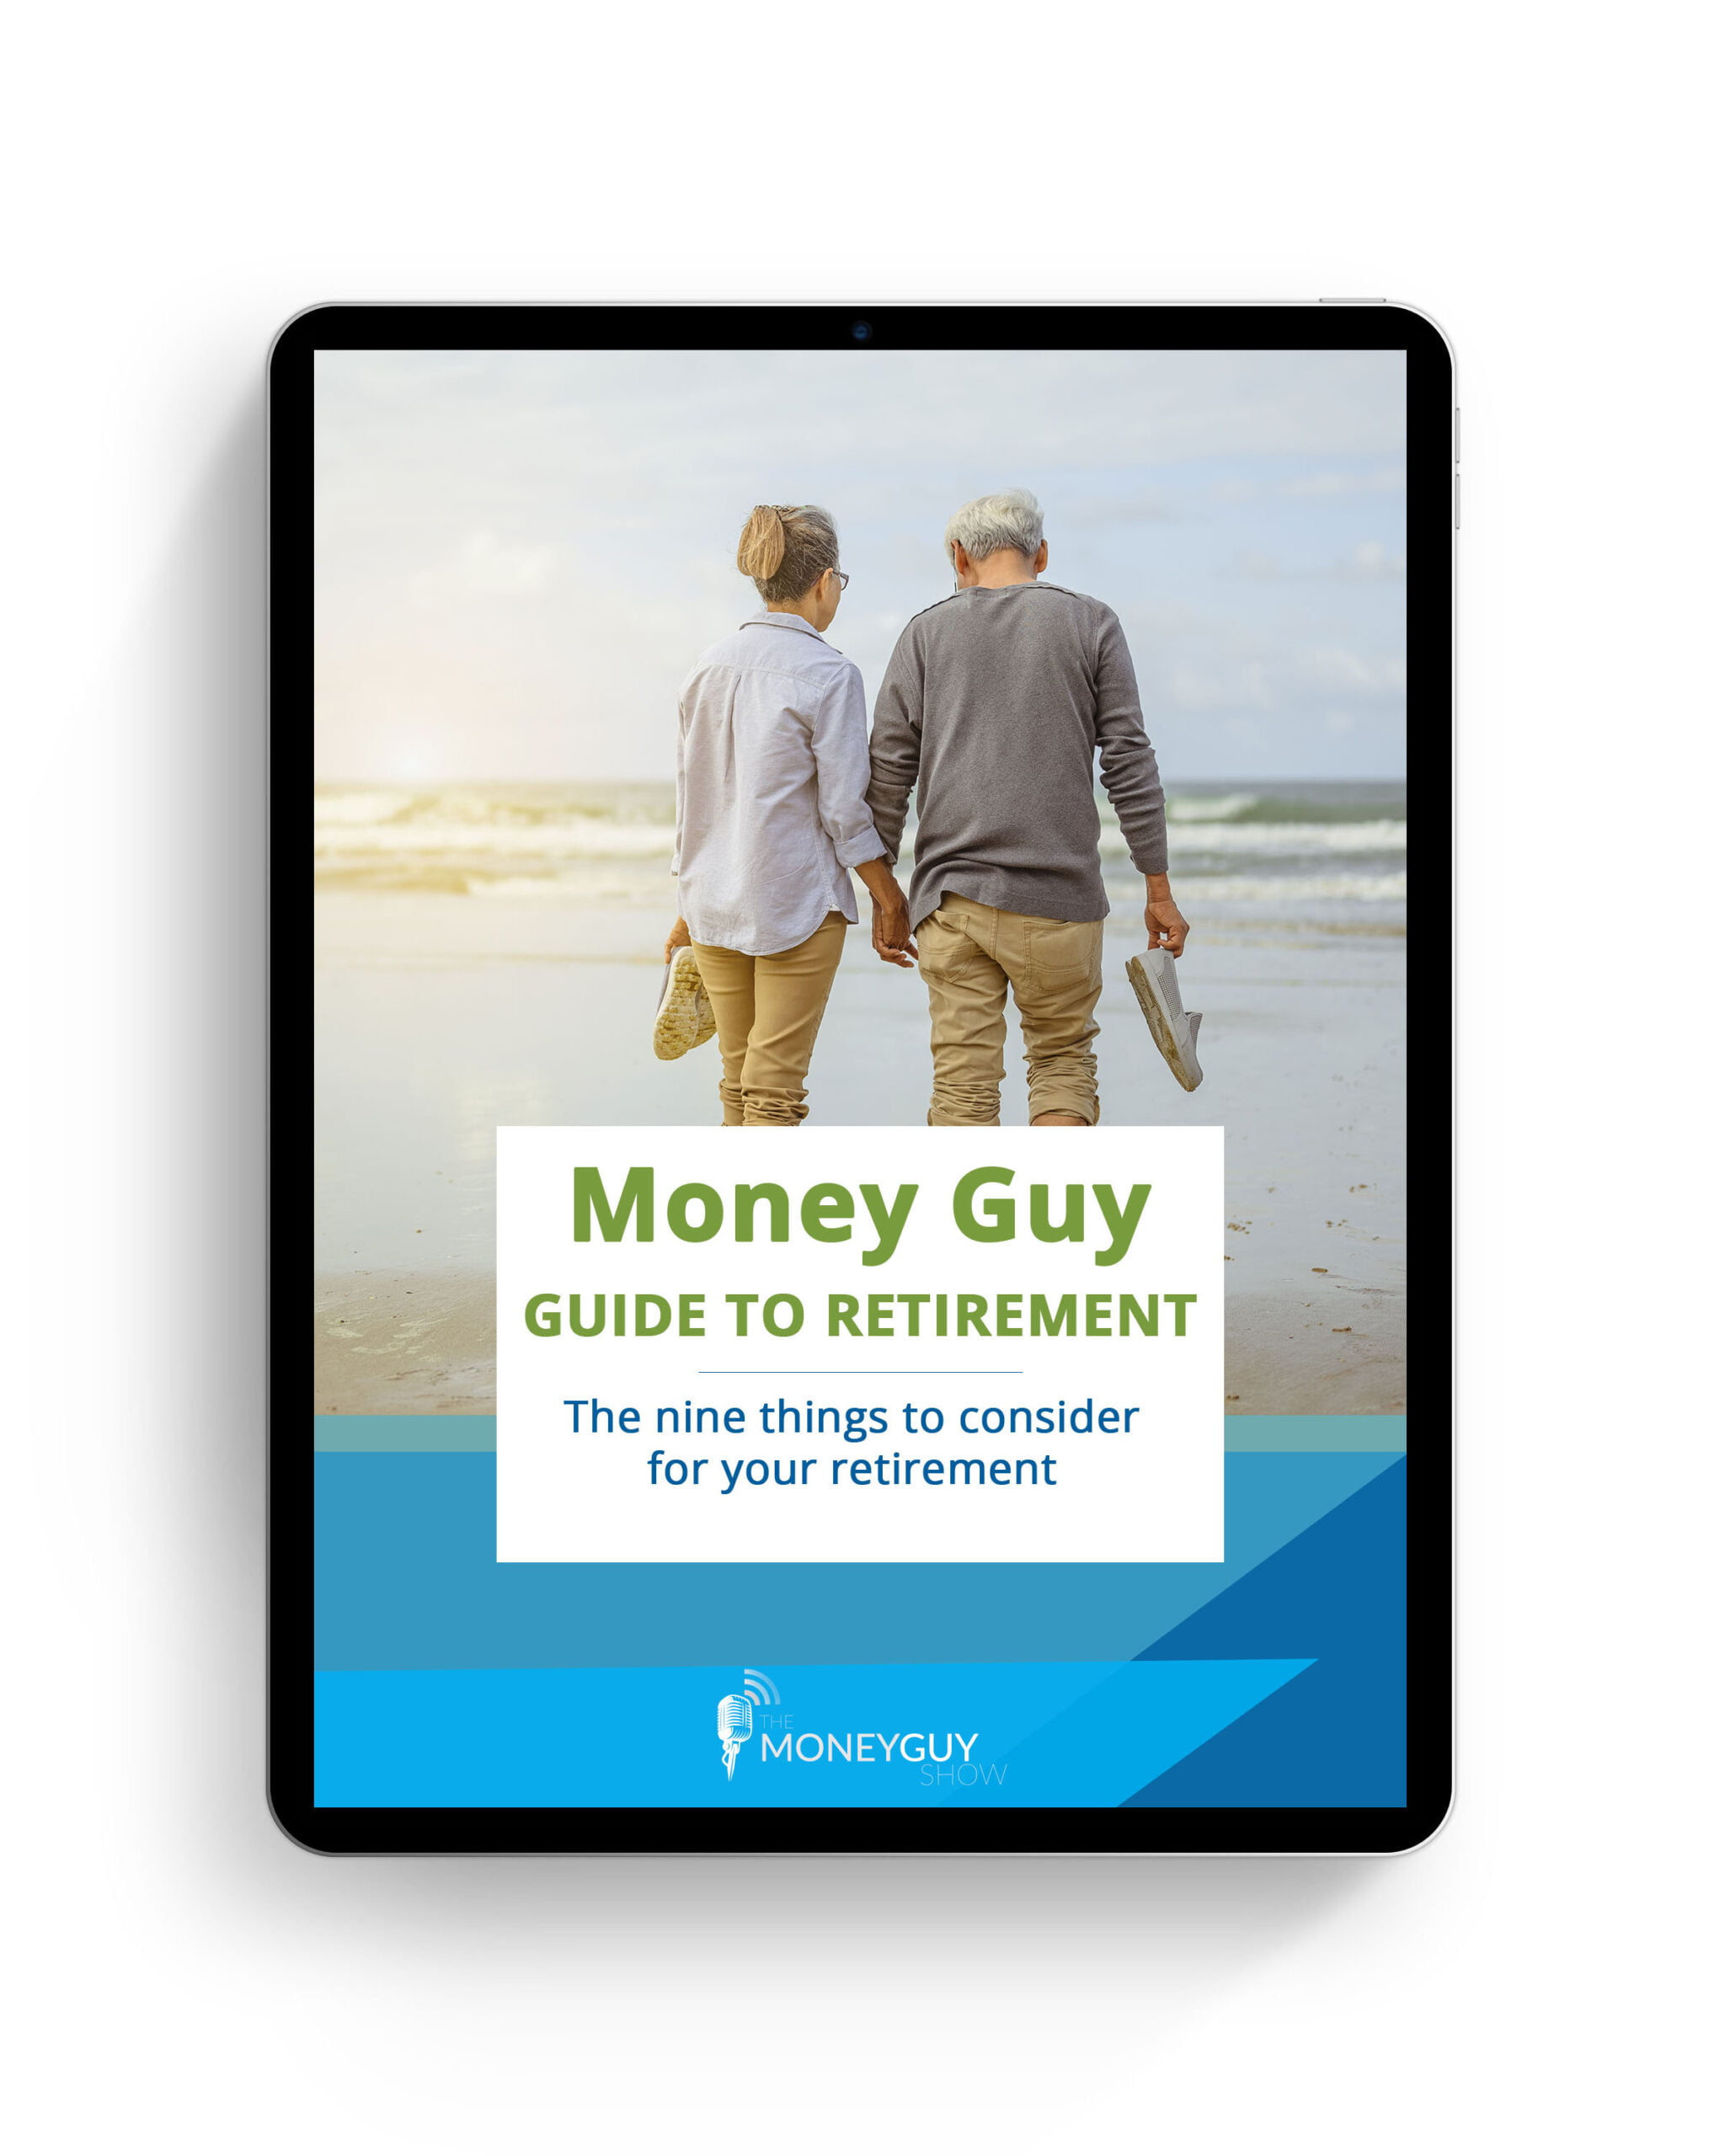 2020-12-16-MGS-Guide-to-Retirement copy